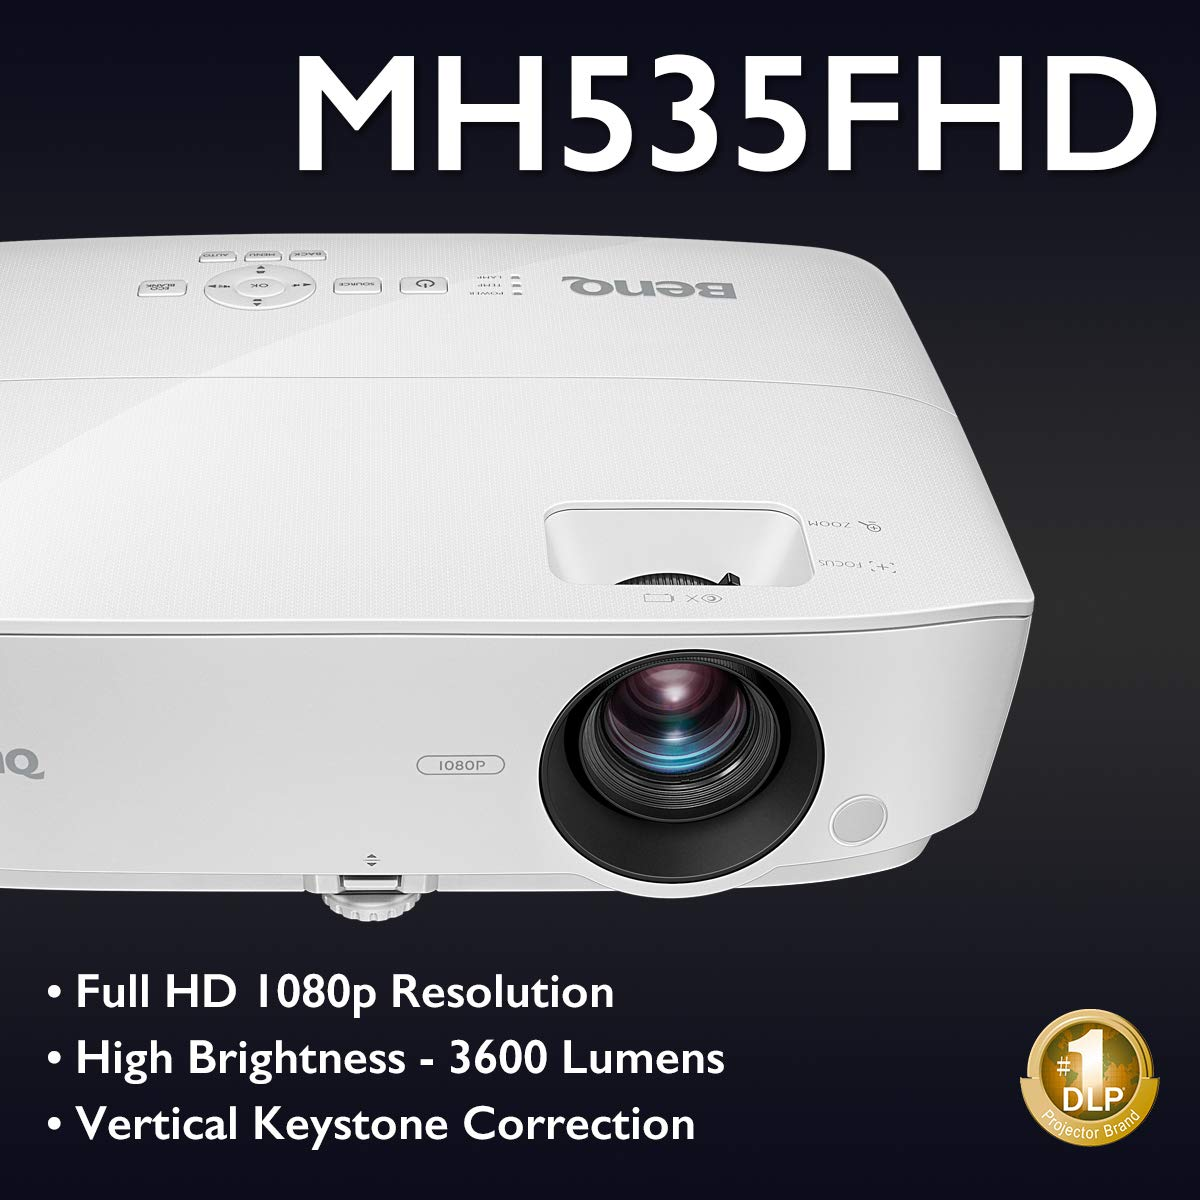 BenQ MH535FHD 1080P Home Theater Projector | 3600 Lumens for Lights on  Enjoyment | High Contrast Ratio for Darker Blacks | Keystone and 1 2x Zoom  for